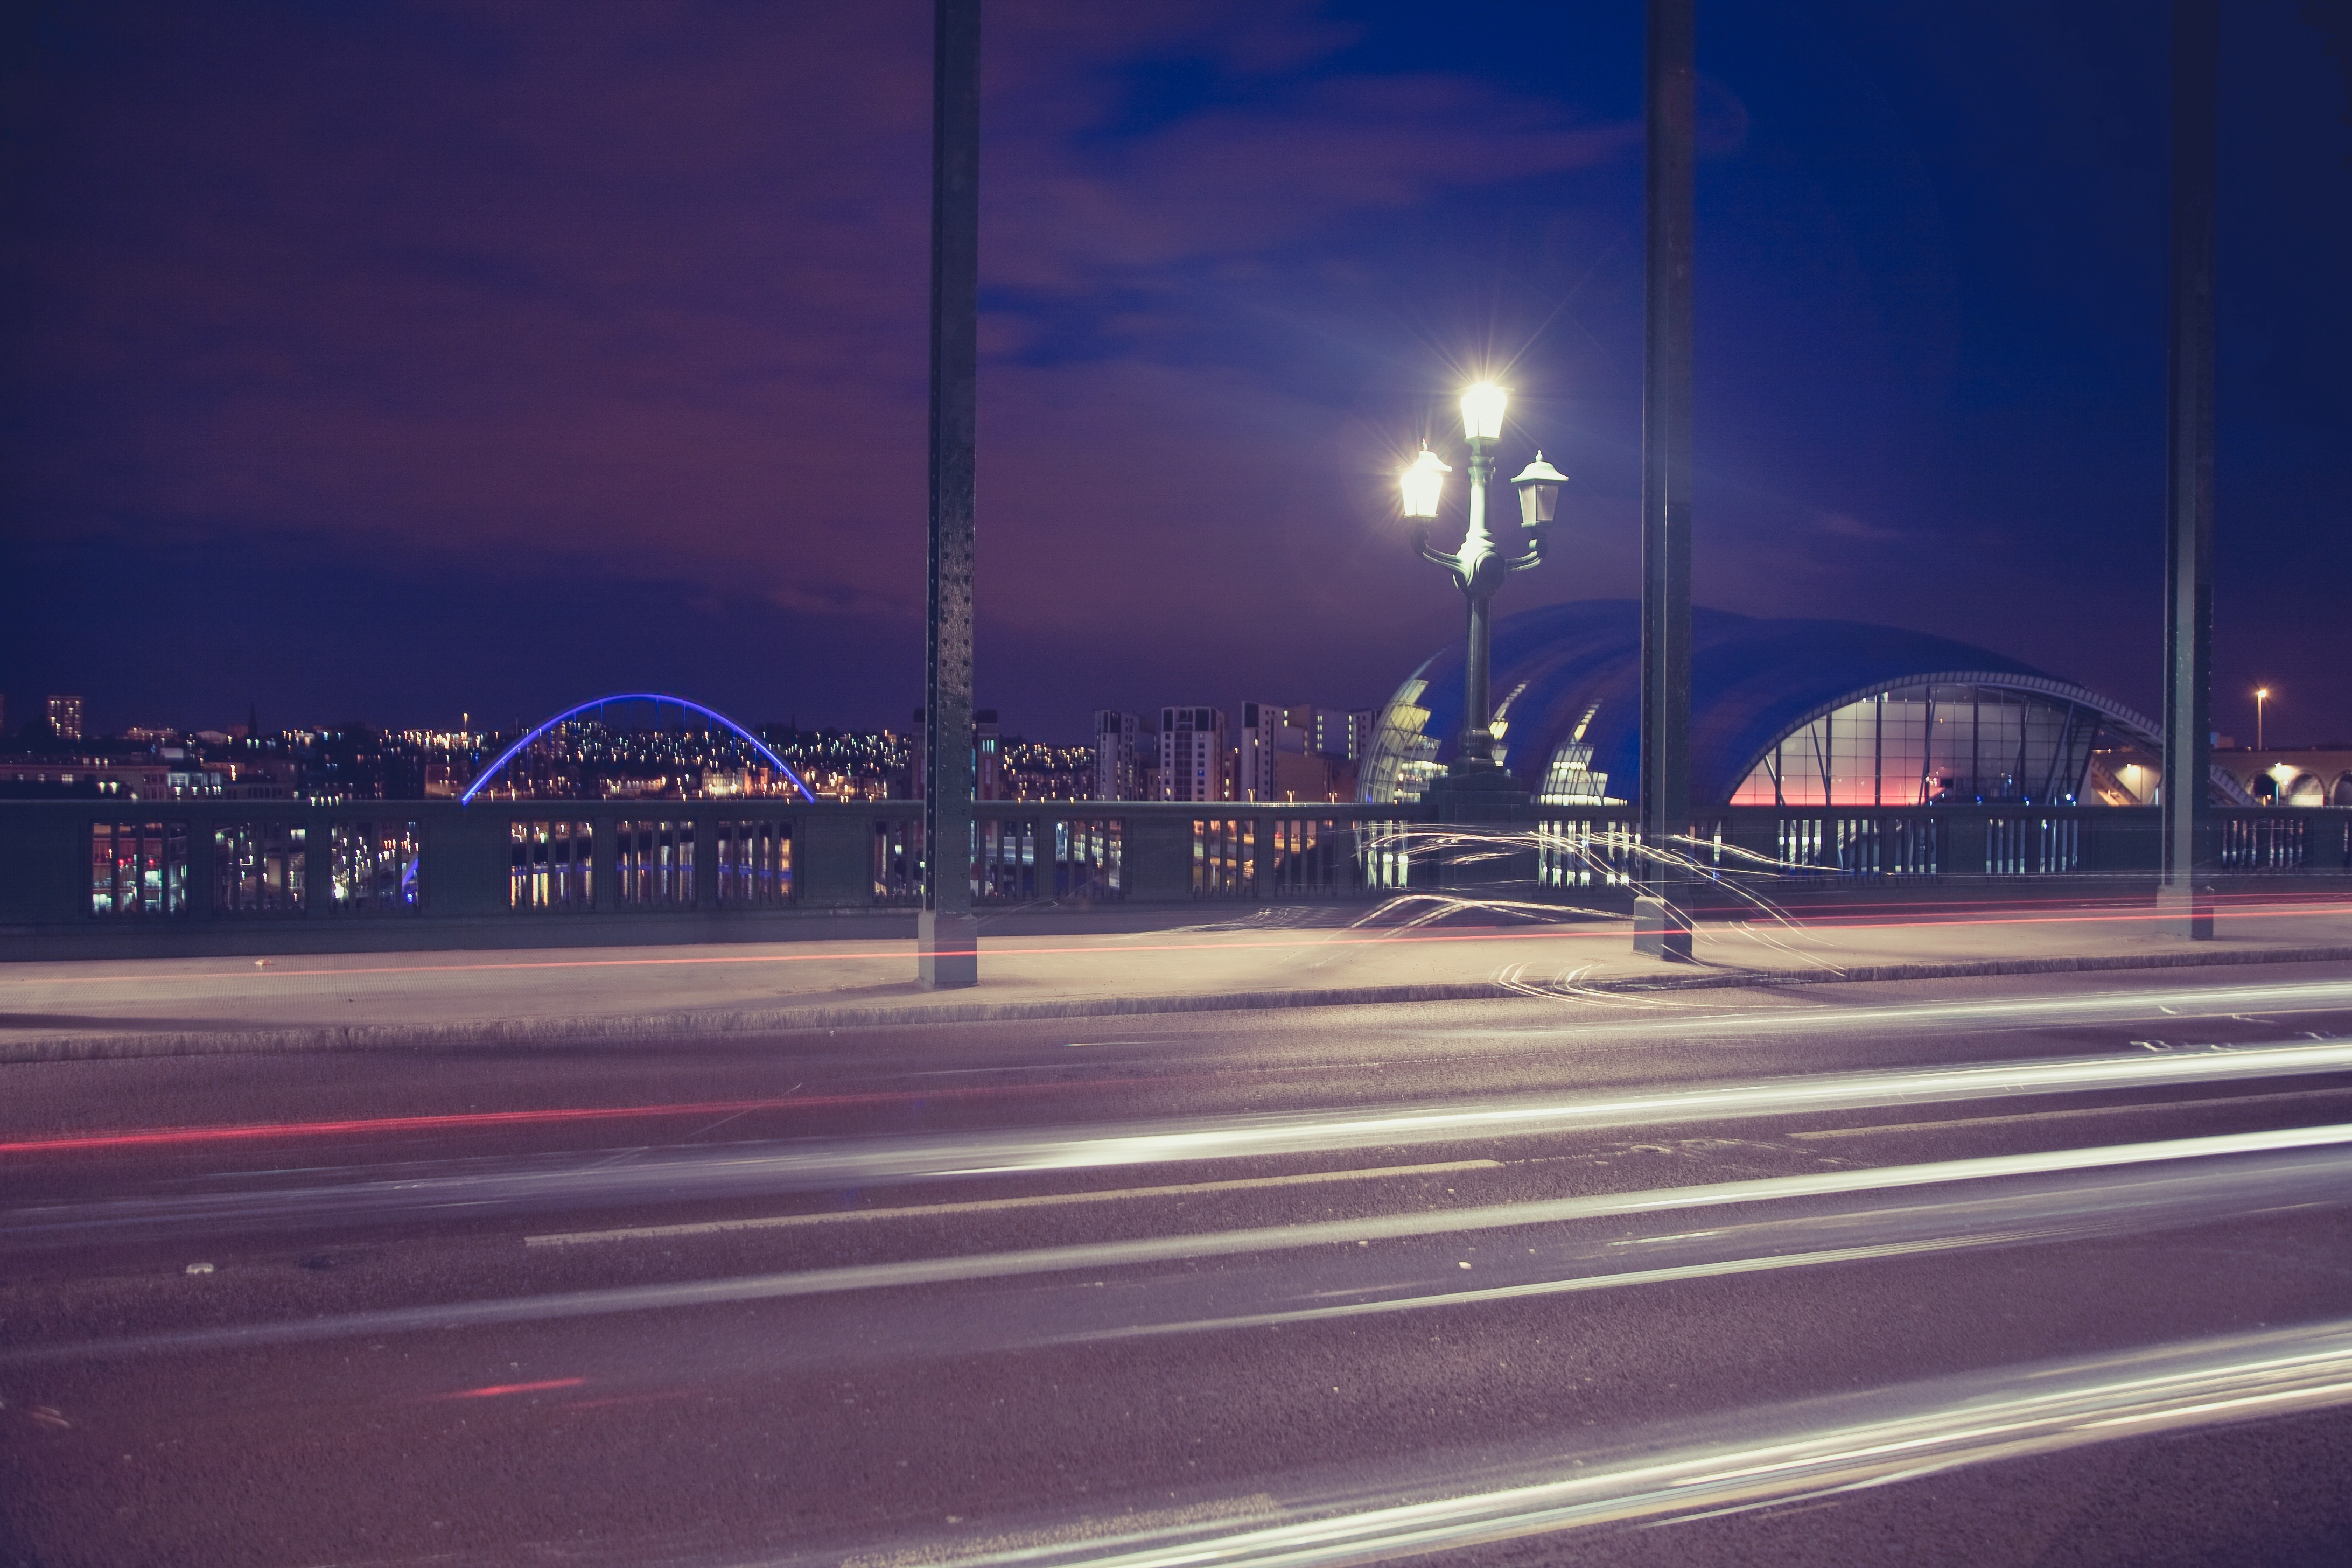 Time Lapse Photography of a Bridge during Night Time, Architecture, Bridge, City, Great britain, HQ Photo